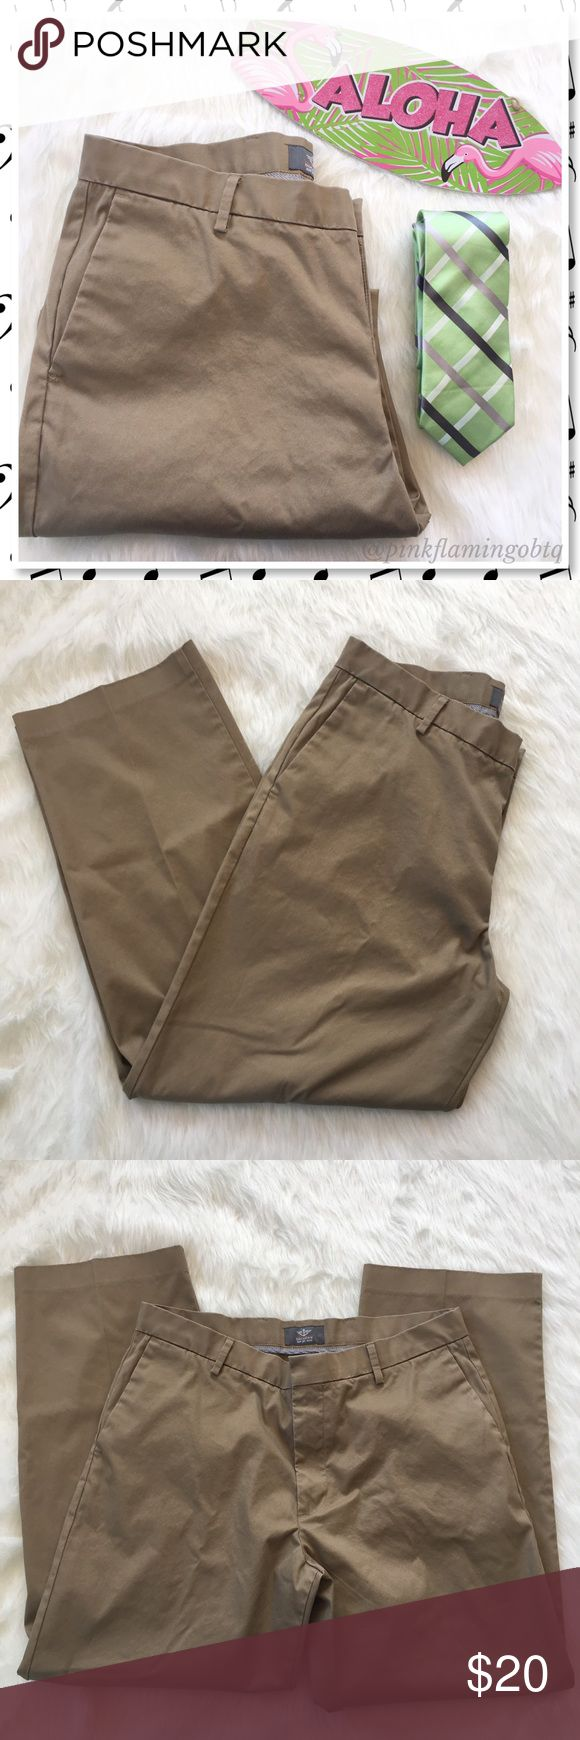 Dockers Classic Fit Iron Free Khaki Pants 🌀HP🌀 Mens classic Dockers khaki pants. Classic fit, iron free and flat front. Closet staple that is so easy to maintain. Wear with a polo or button down shirt. Great used condition size 36x30. Issac Mizrahi tie not included for styling purposes only. Dockers Pants Chinos & Khakis